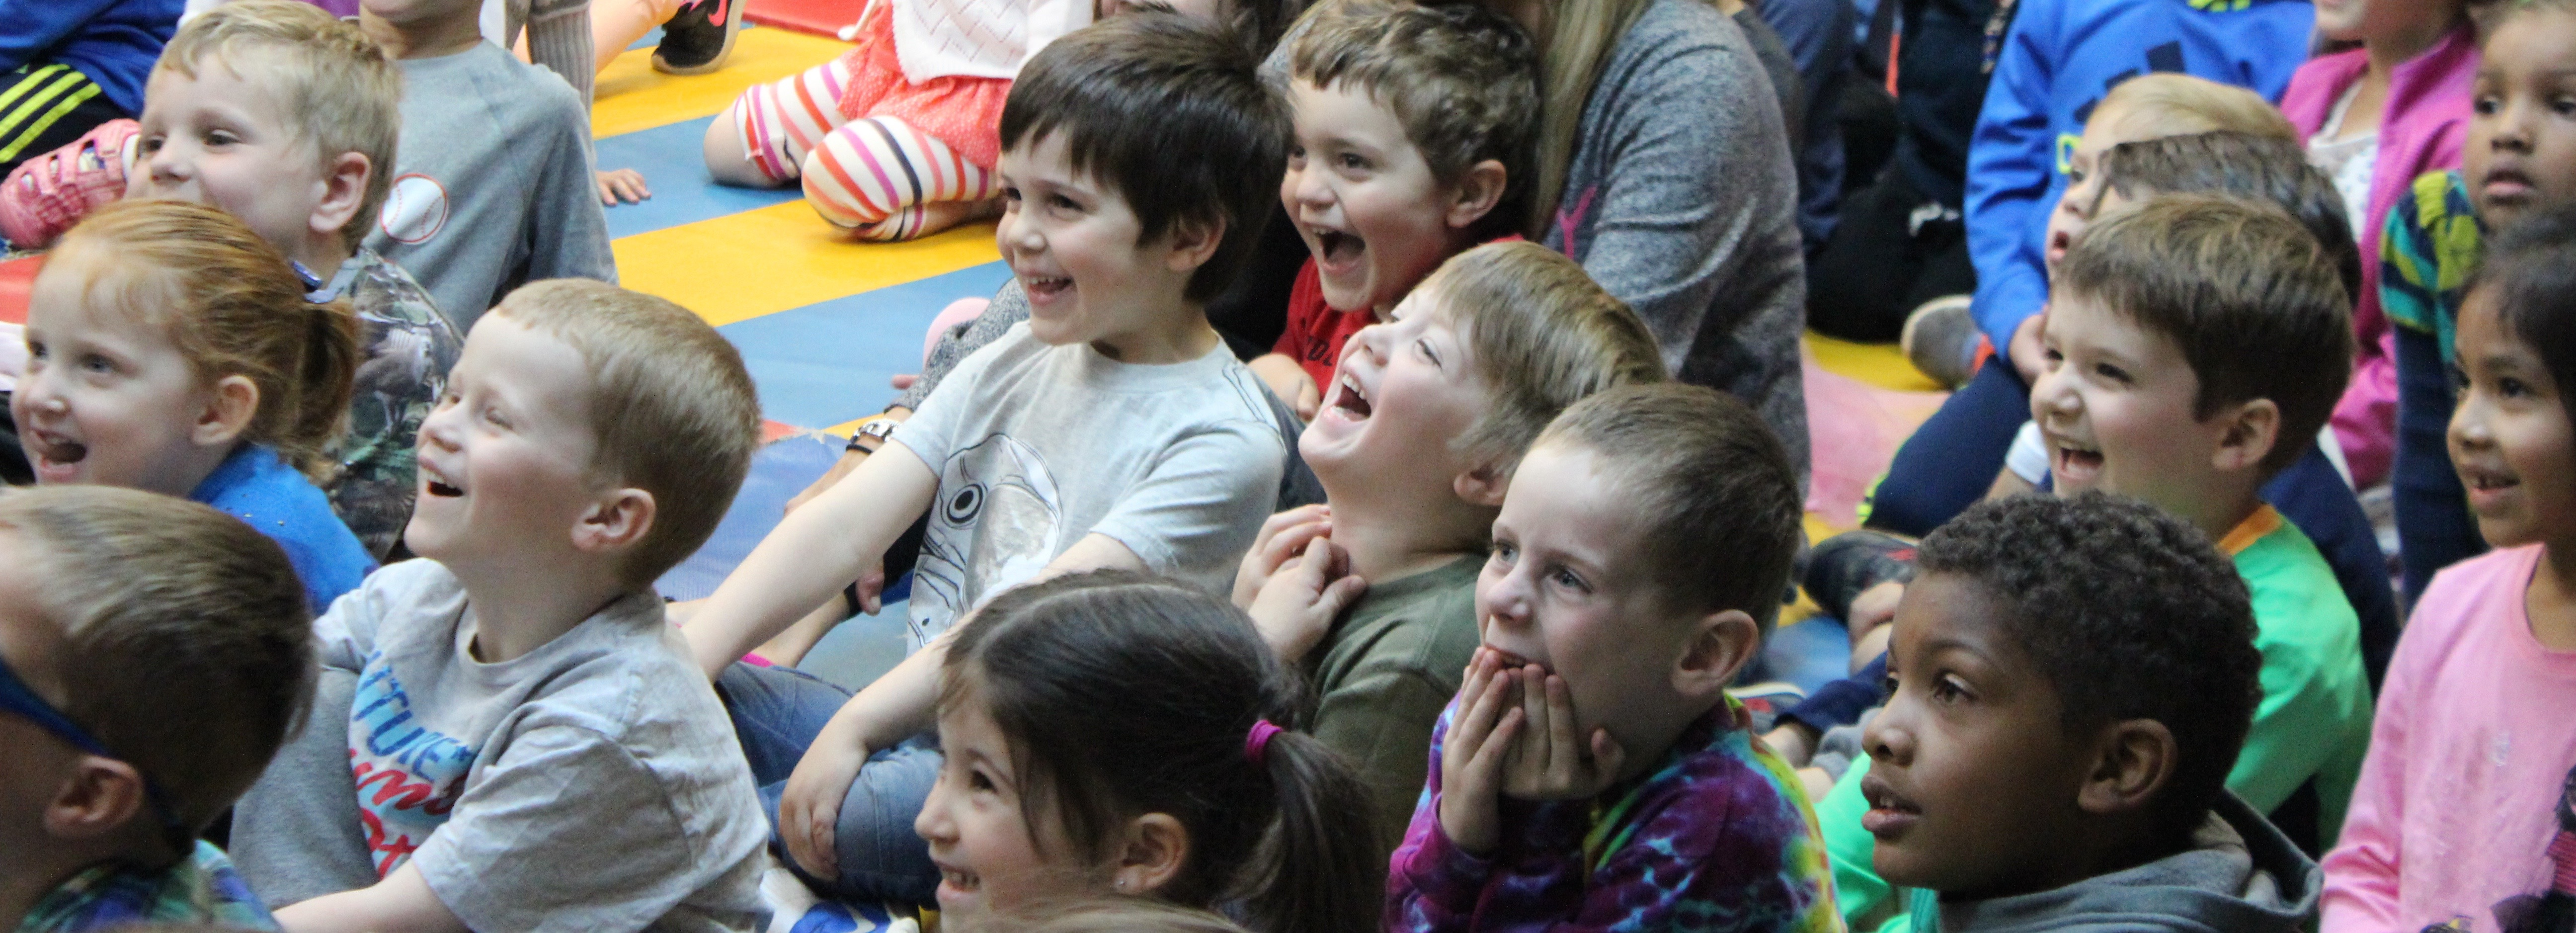 3-6 year old children laughing as they watch a performance.